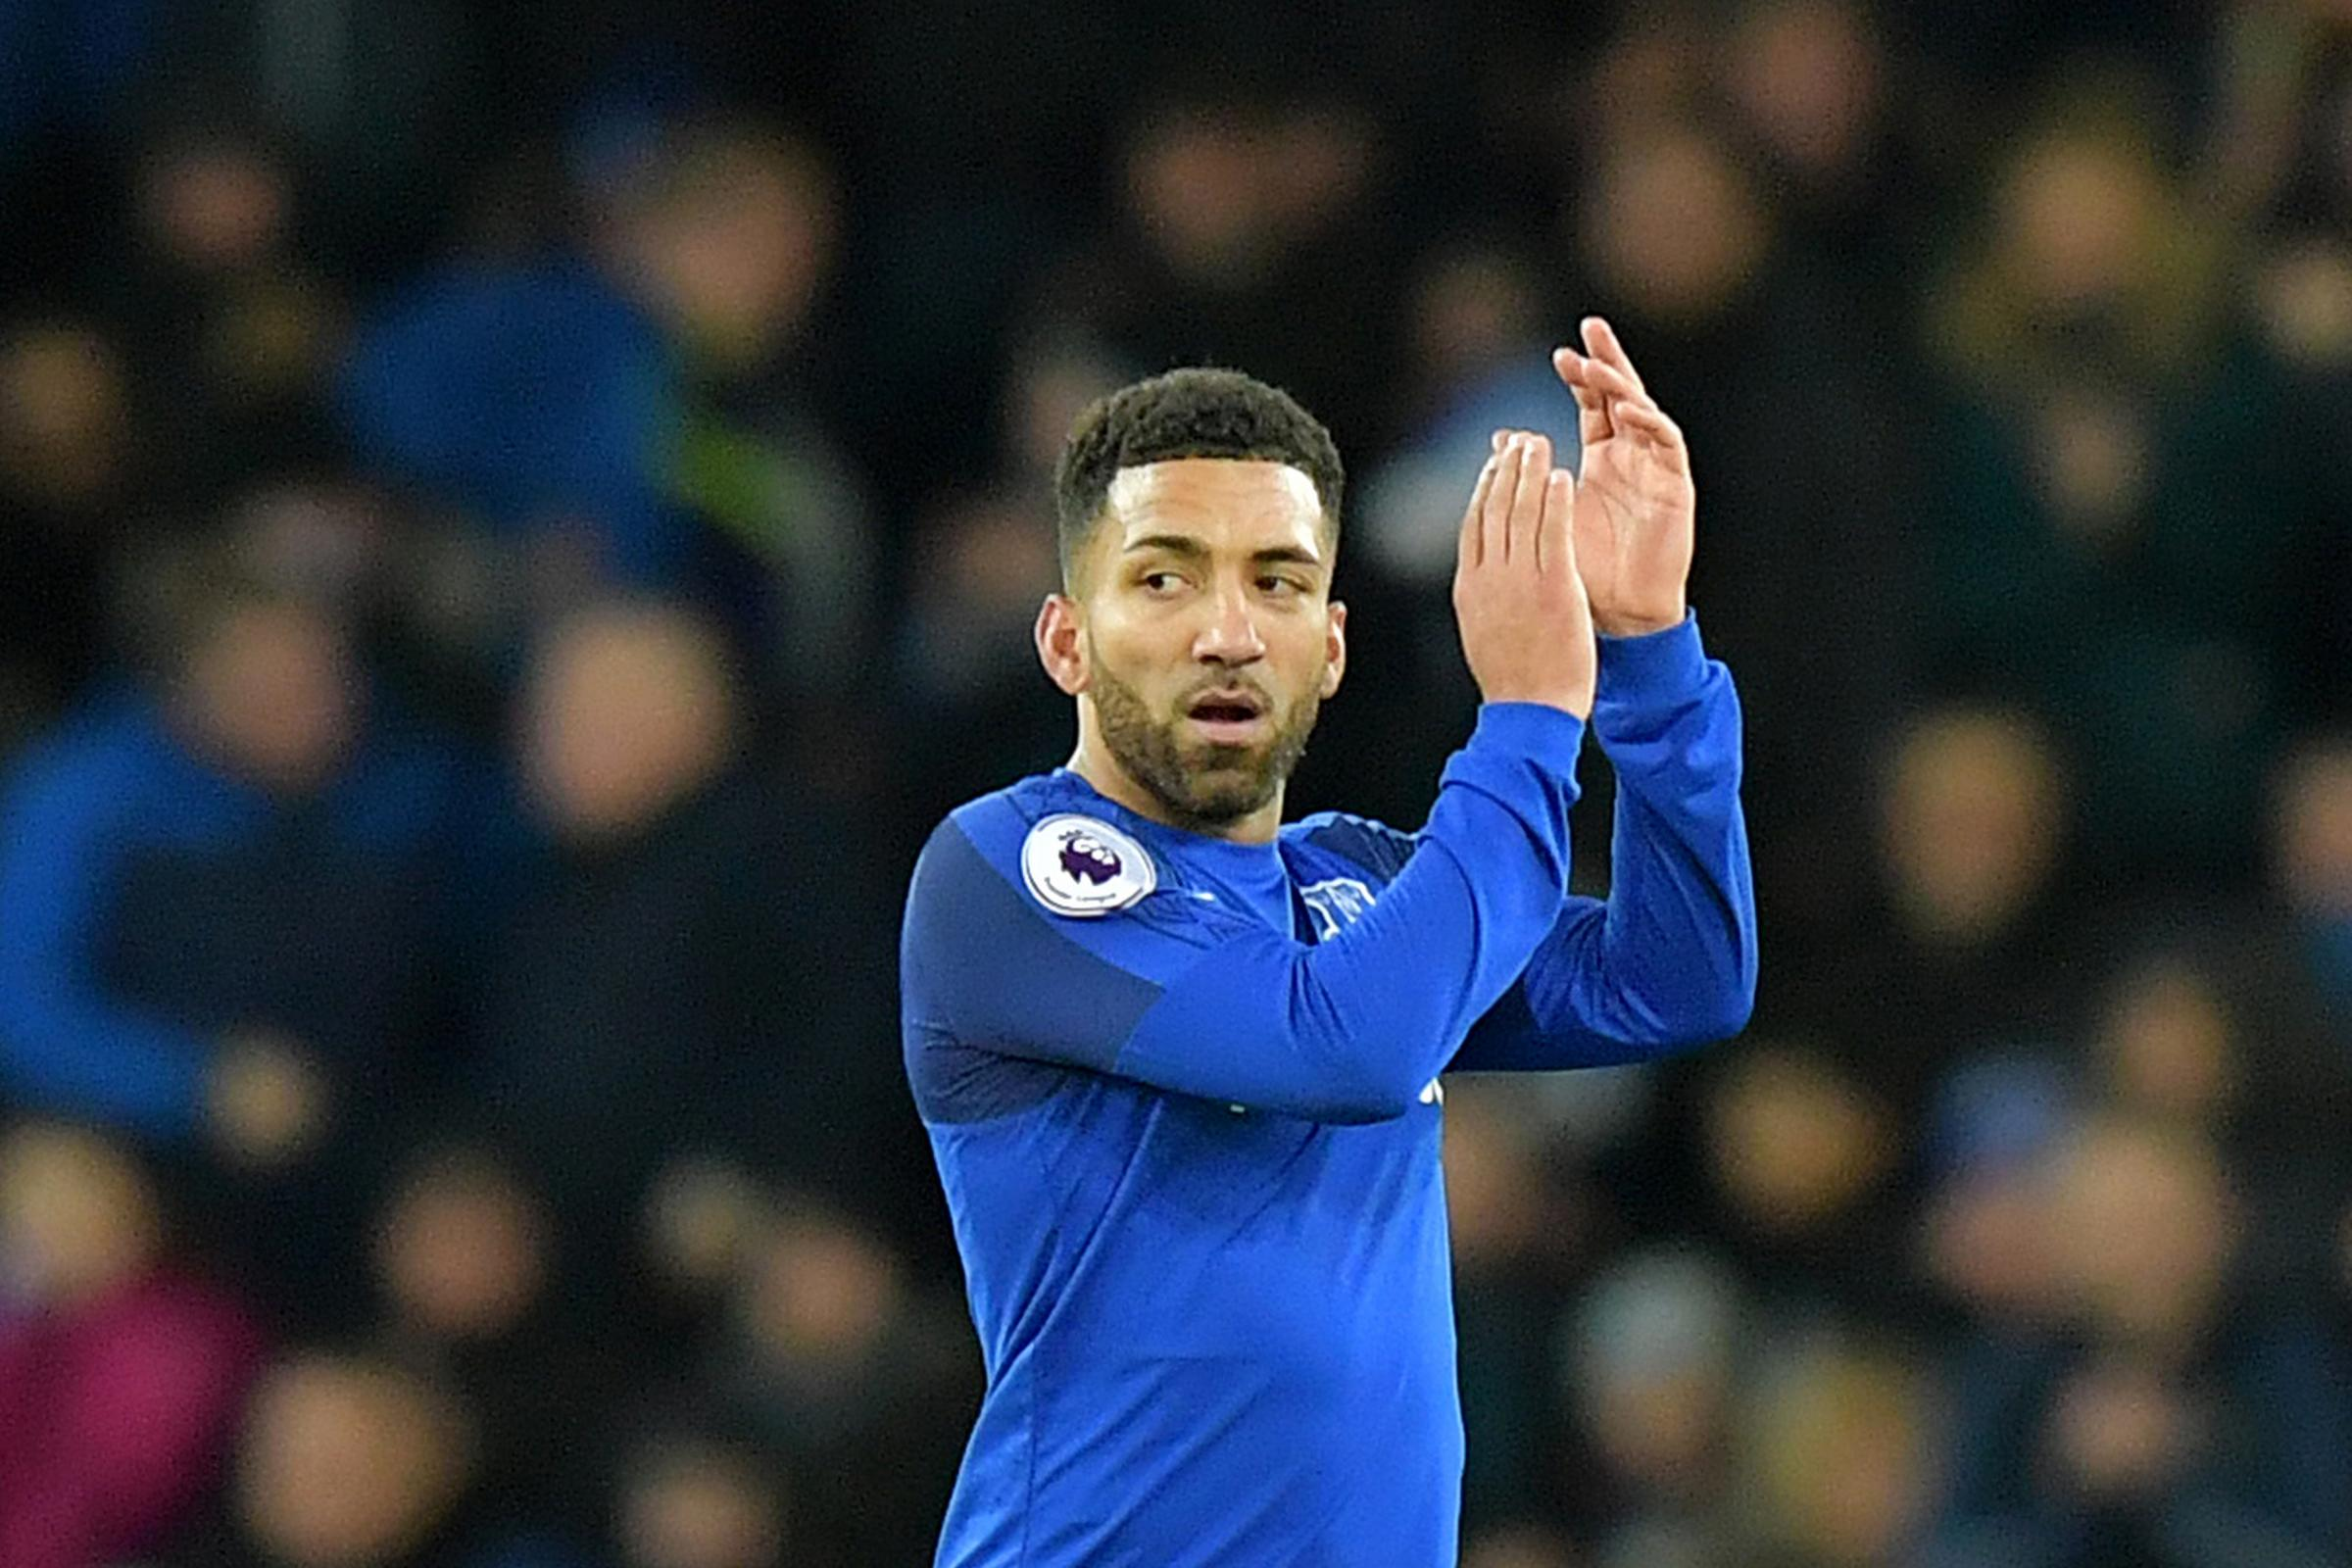 Aaron Lennon received treatment for a stress-related illness after an incident in May (Dave Howarth/PA)